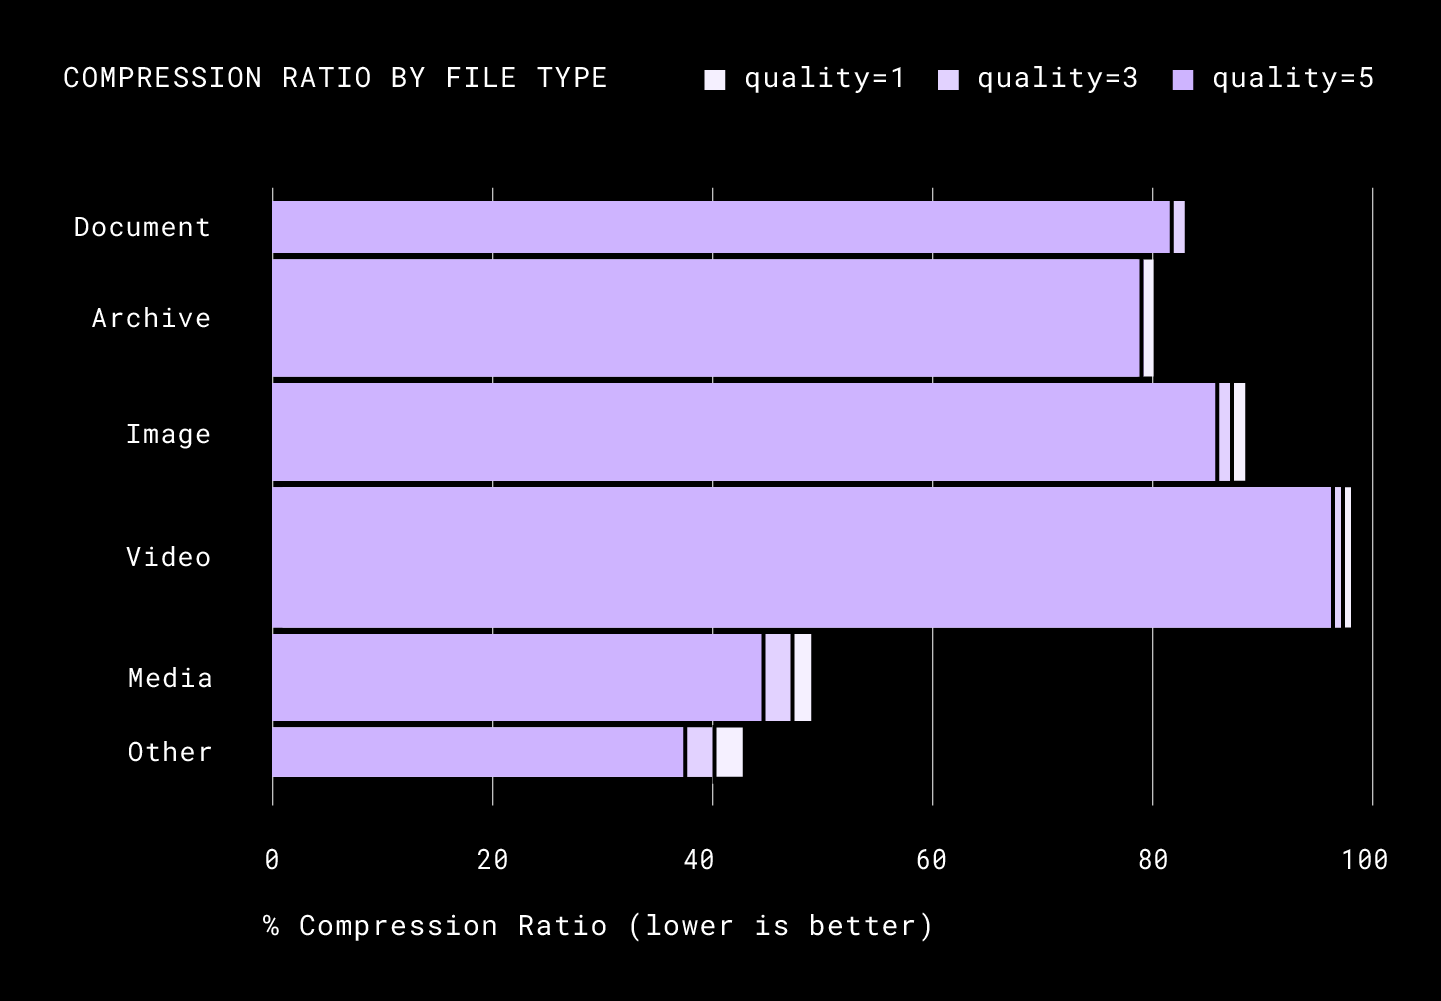 Compression Ratio by file type.